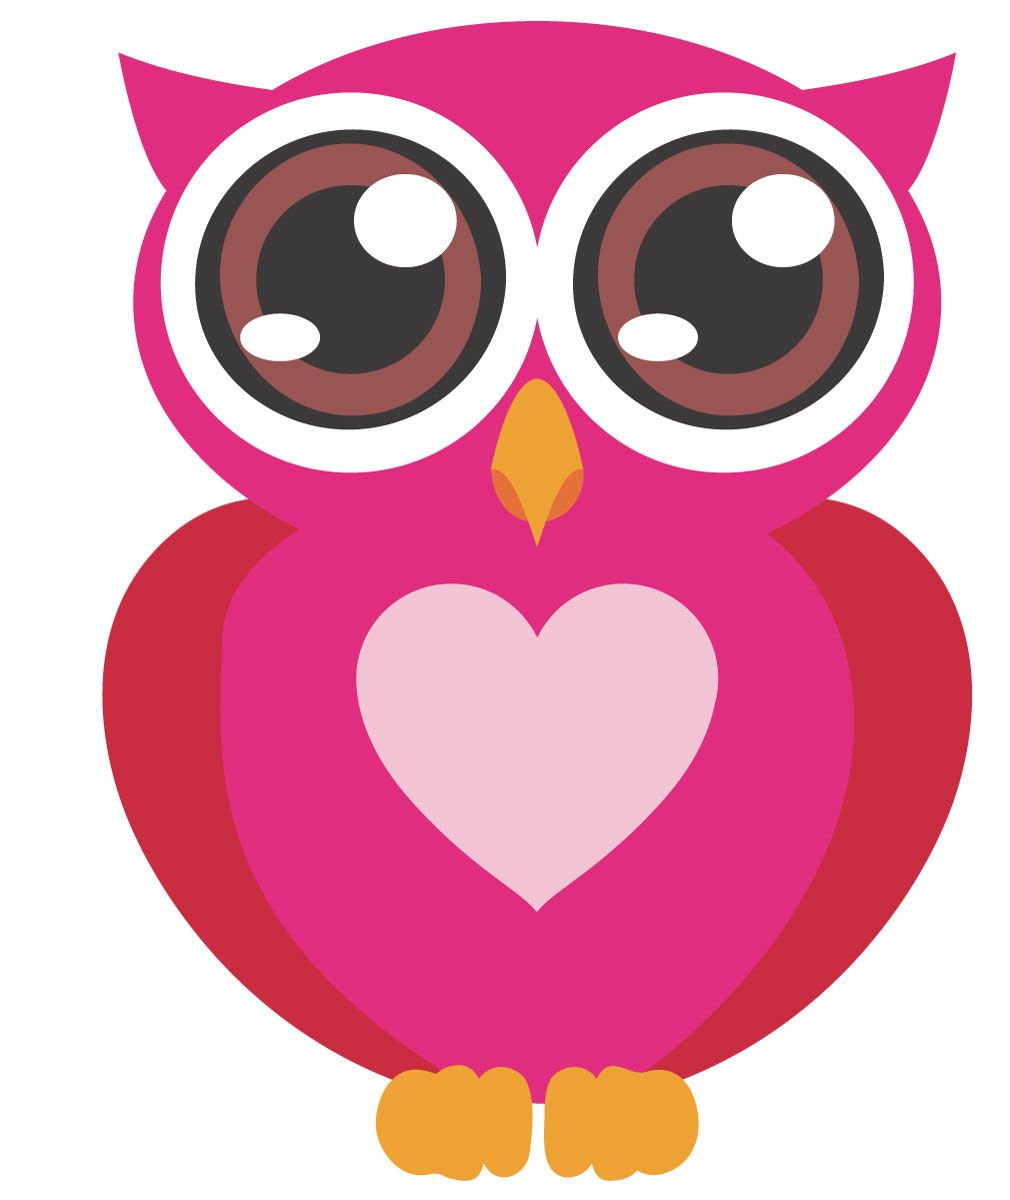 pink owl with big eyes wall stickers totally movable pink owl rh pinterest com pink and brown owl clip art pink and brown owl clip art